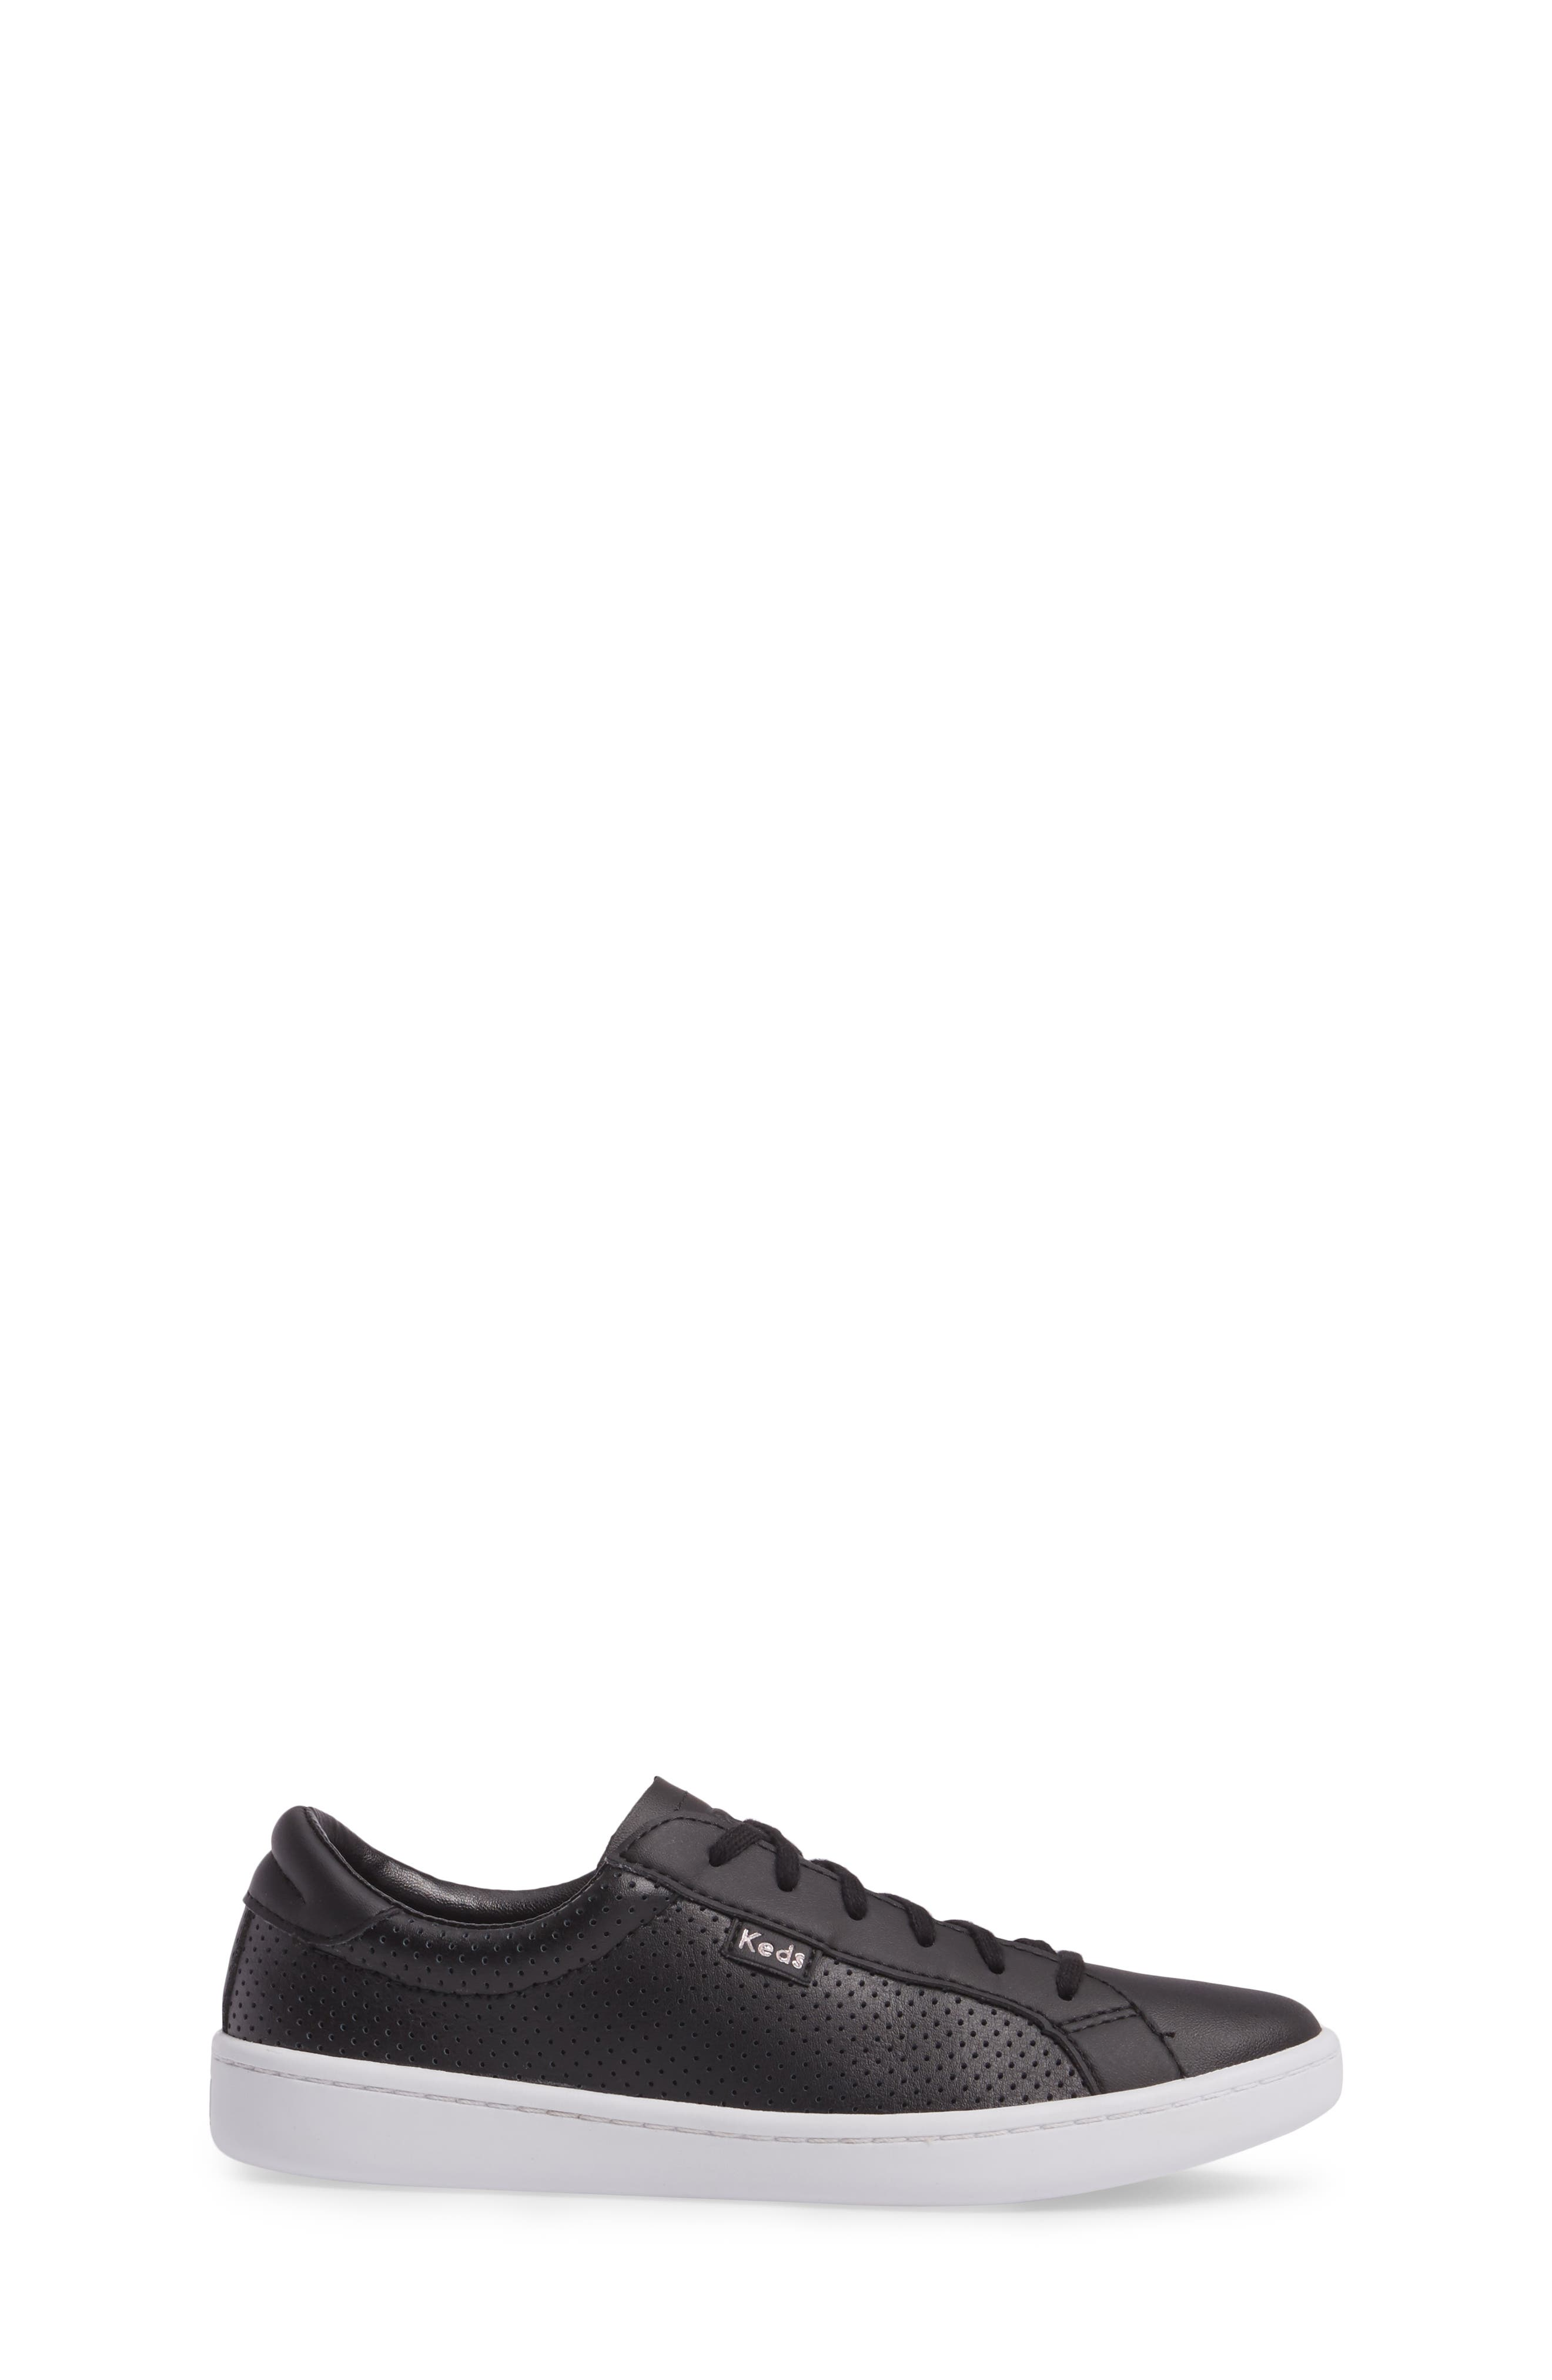 Ace Perforated Low Top Sneaker,                             Alternate thumbnail 3, color,                             001